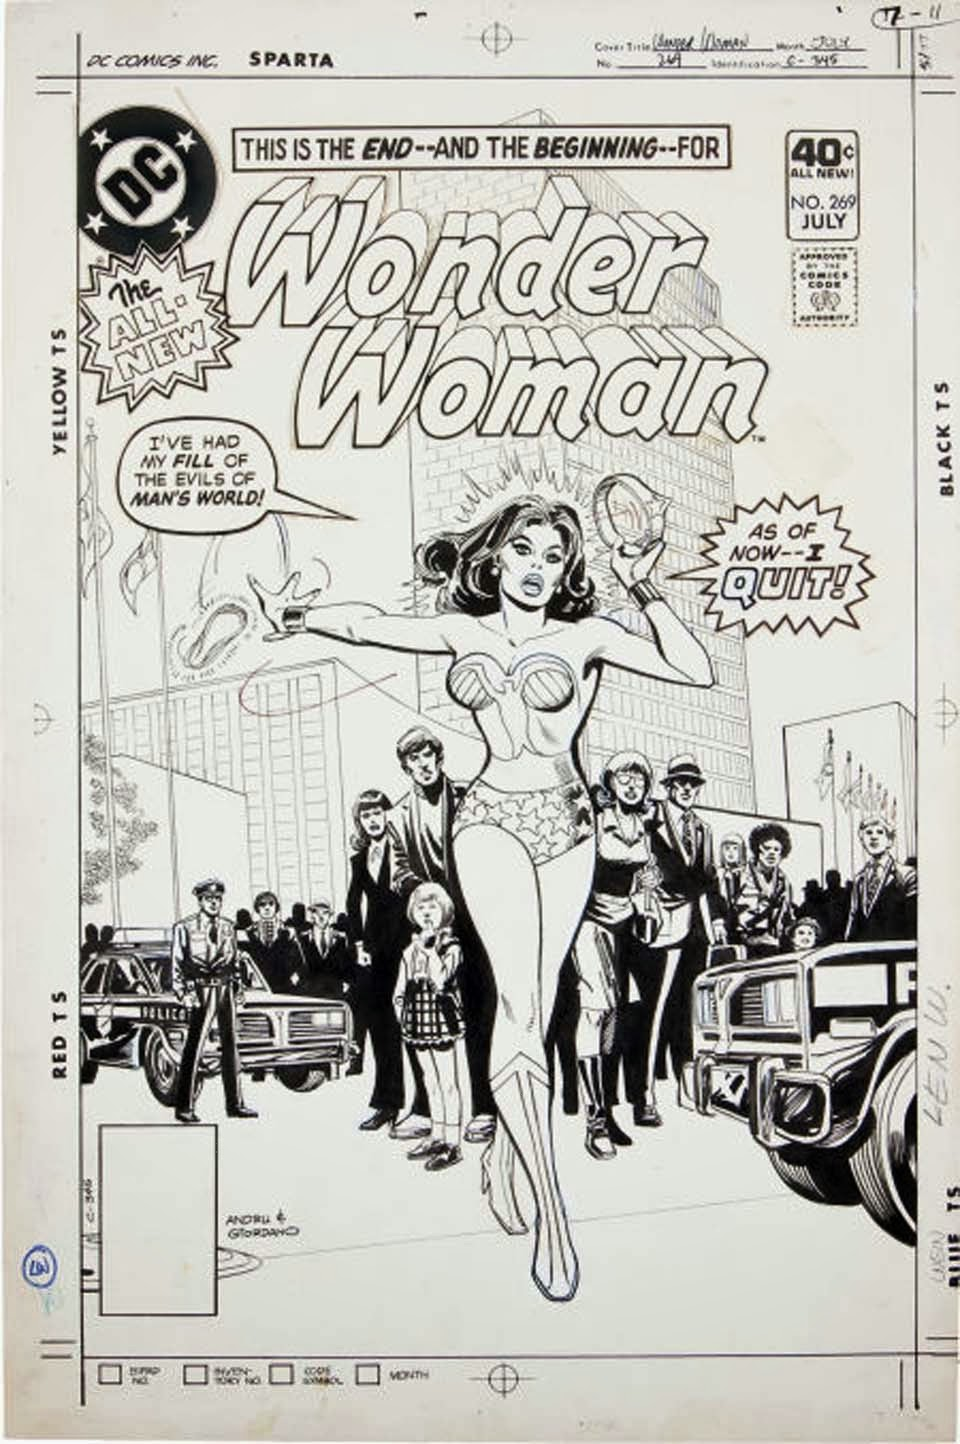 DC Comics of the 1980s: 1980 - Anatomy of a Cover - Wonder Woman #269